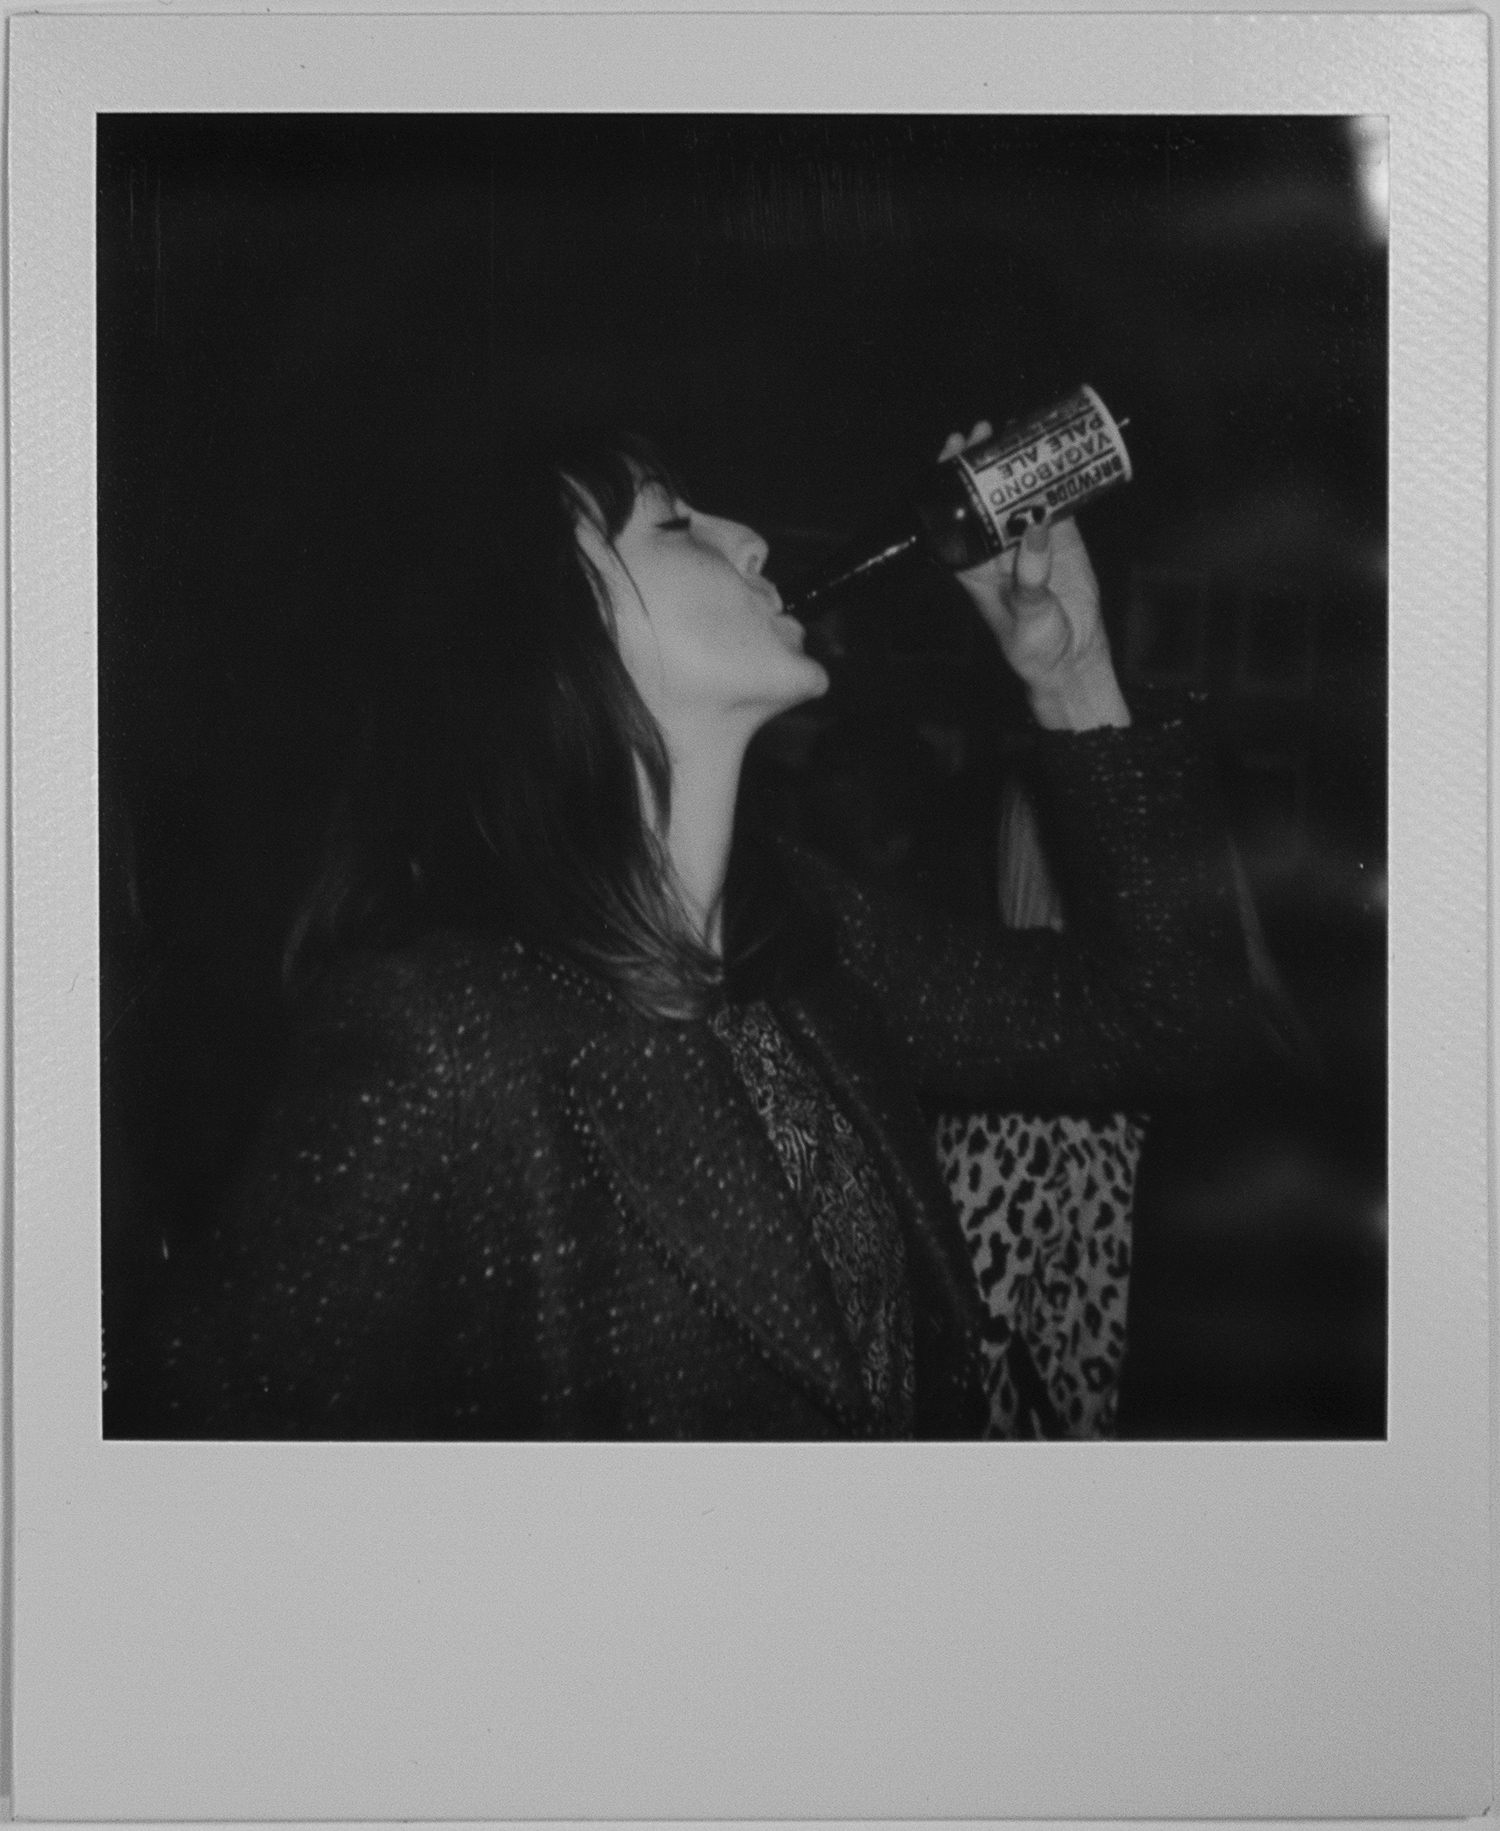 PYLOT ISSUE 04 LAUNCH PARTY IMPOSSIBLE PROJECT 03